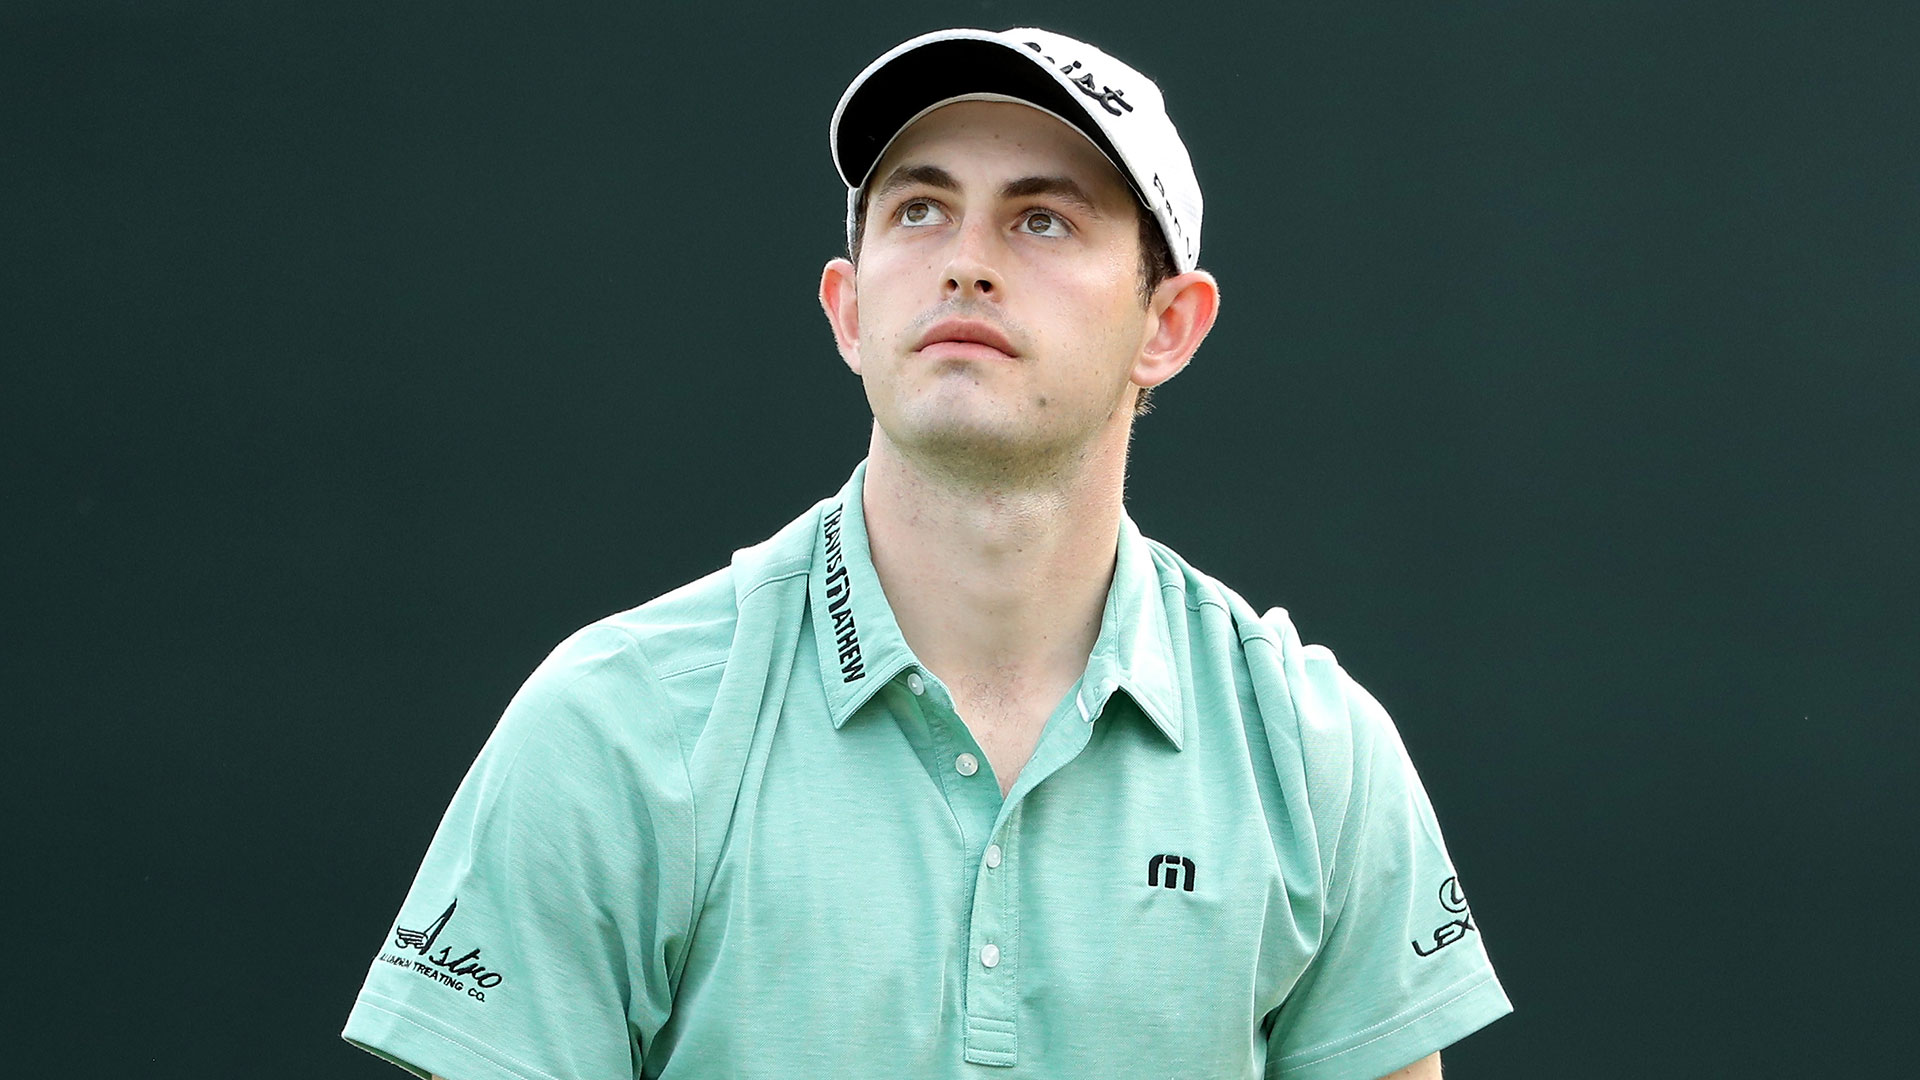 cantlay secures card rues poor finish at valspar golf